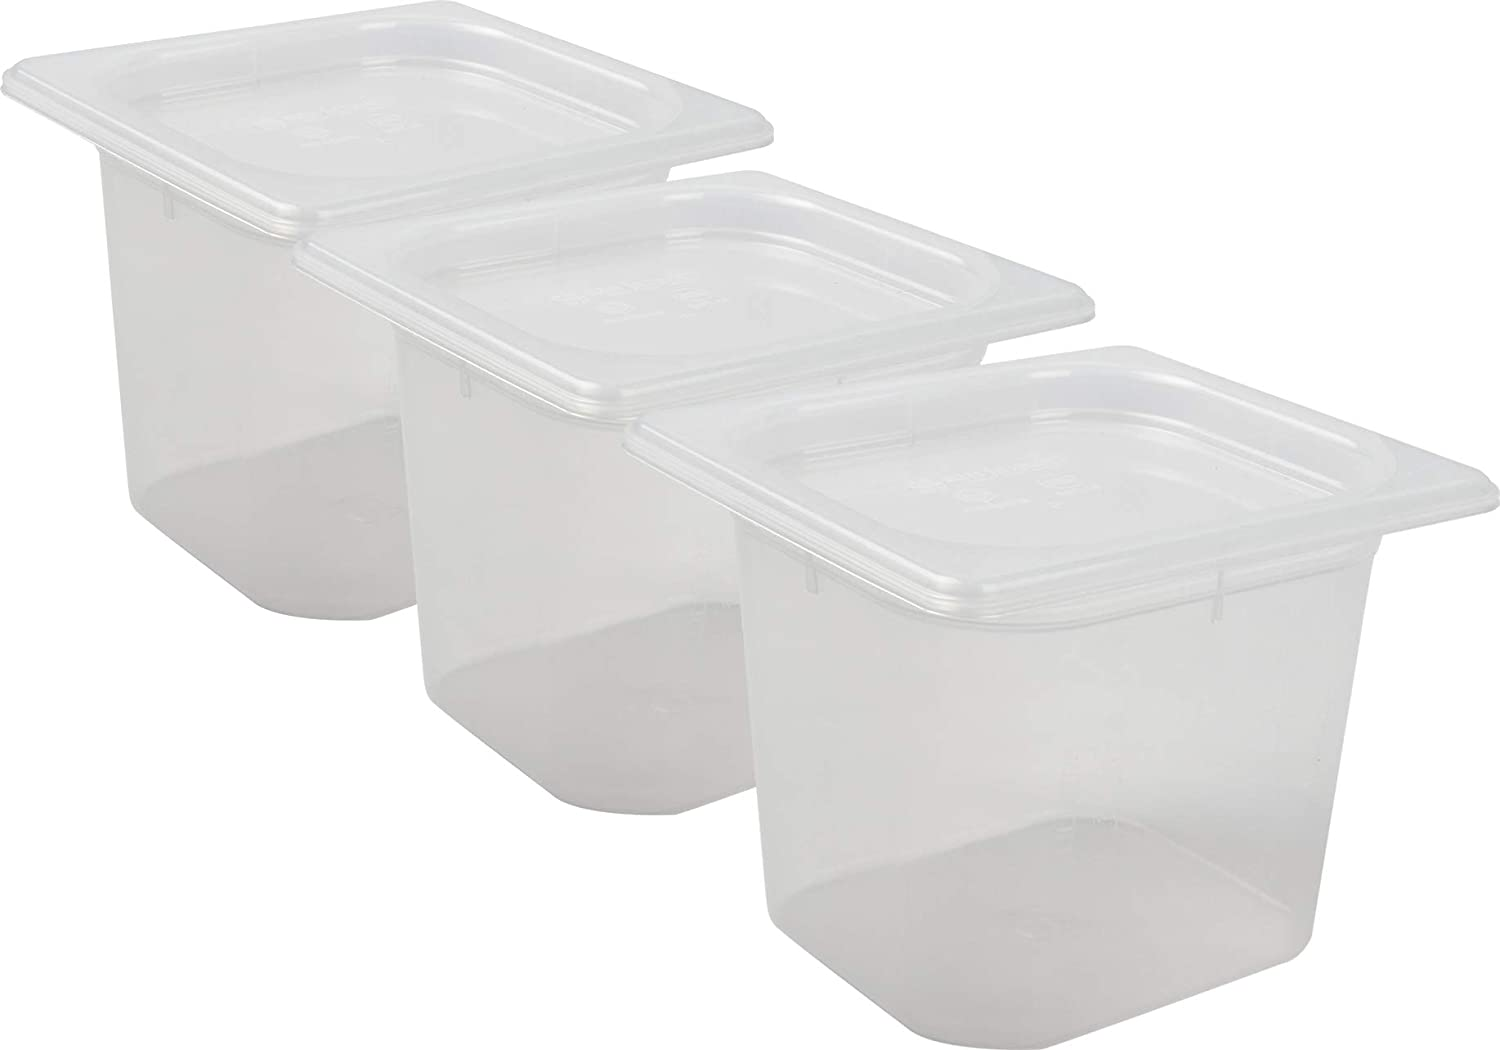 San Jamar MP16RD Mod Pans 1/6 Food Pan with Lid, Retail Pack, 2 quart (Pack of 3)